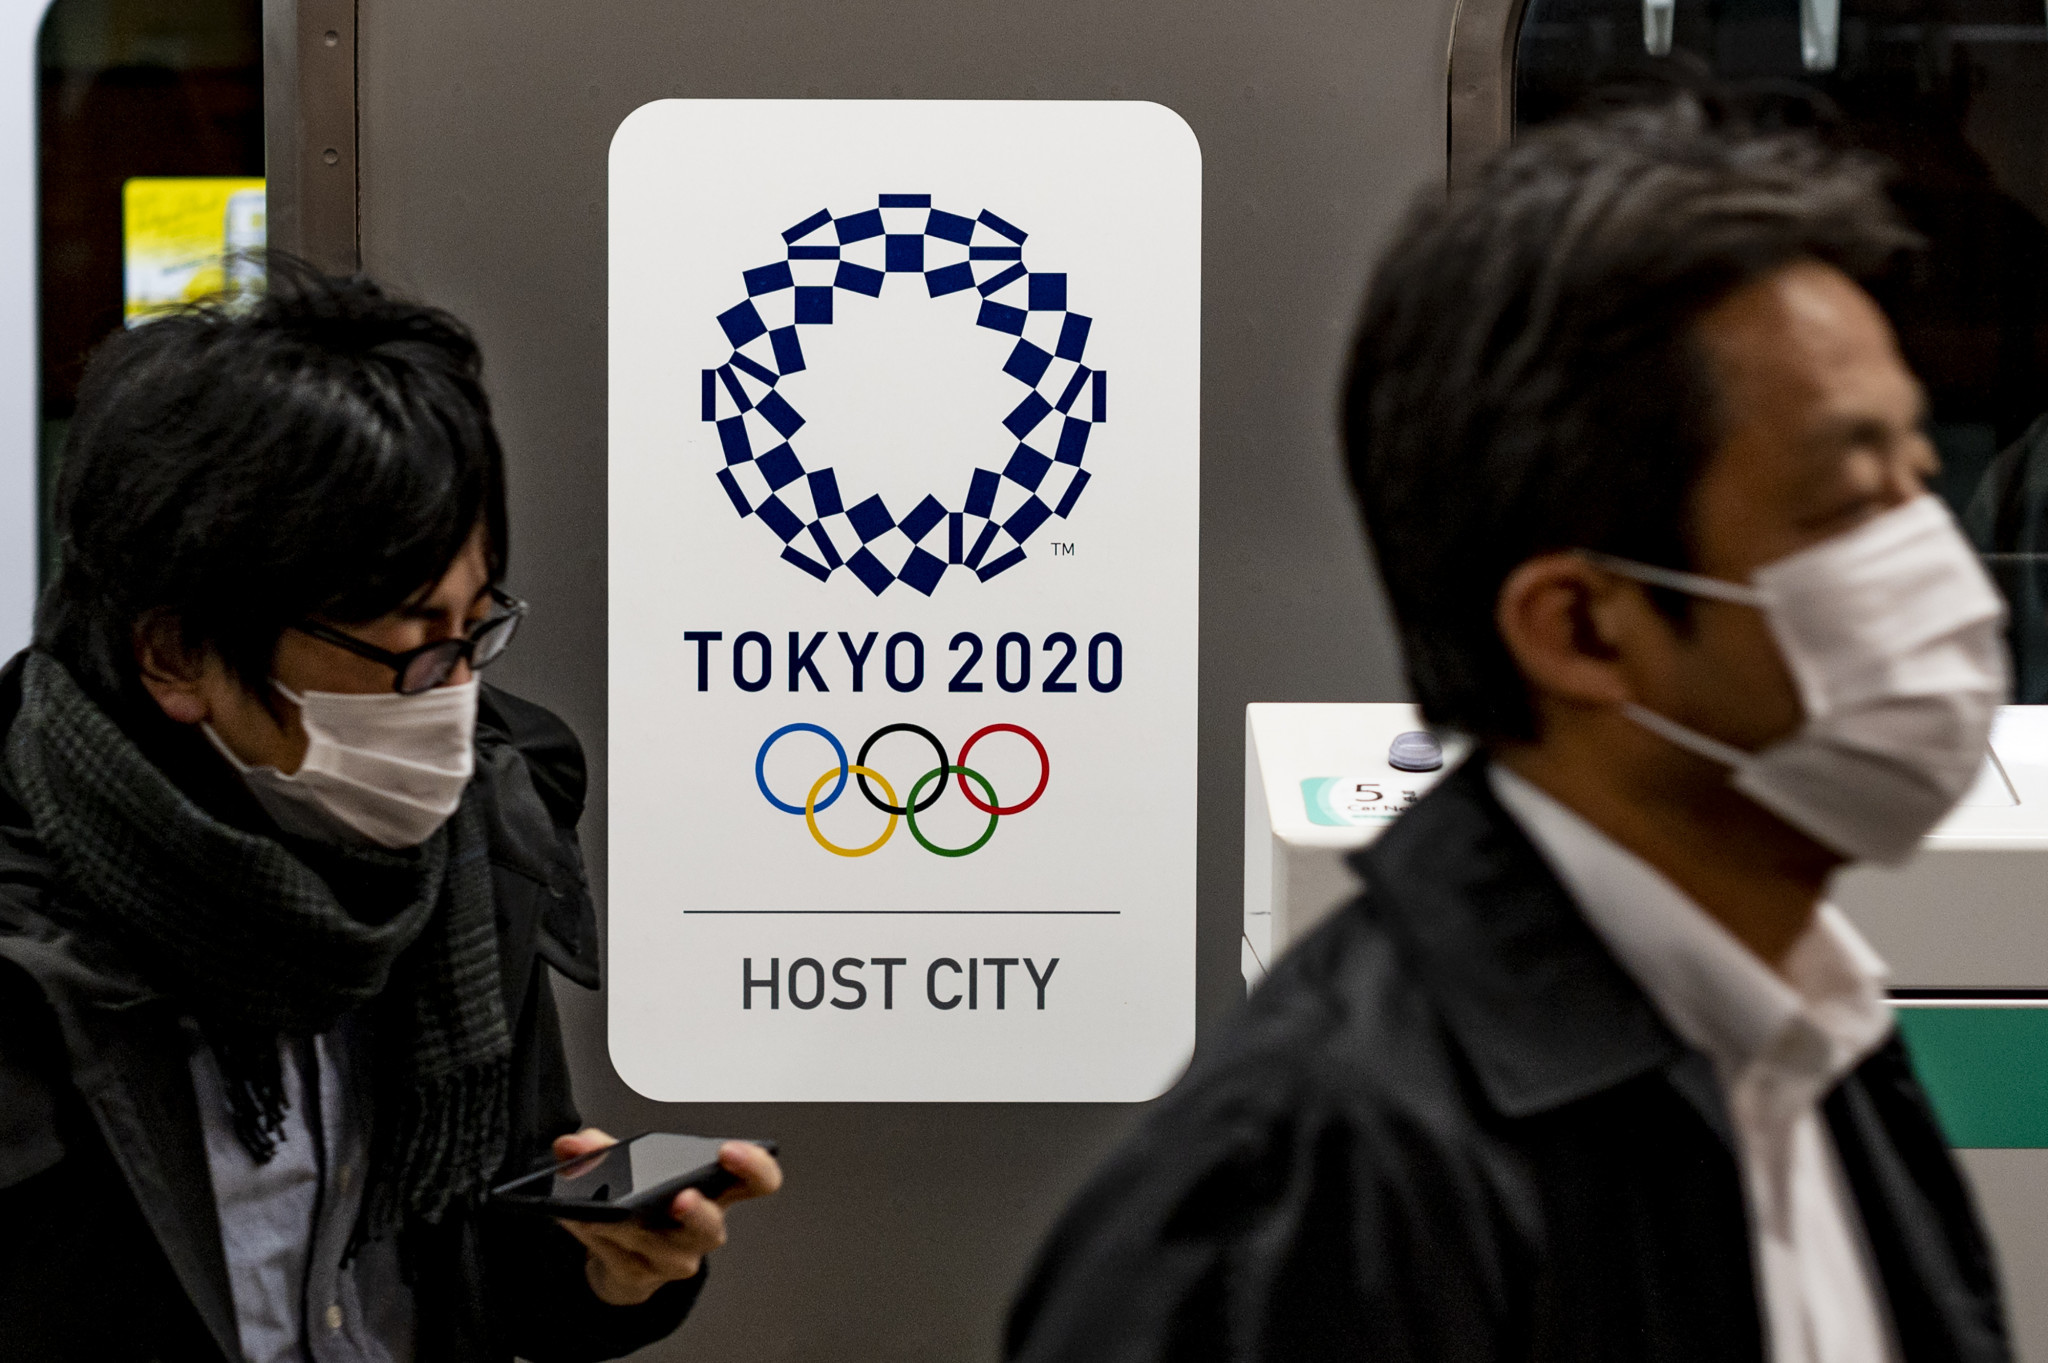 Around 18 per cent of Japanese ticketholders for the Tokyo 2020 Olympics have requested refunds ©Getty Images